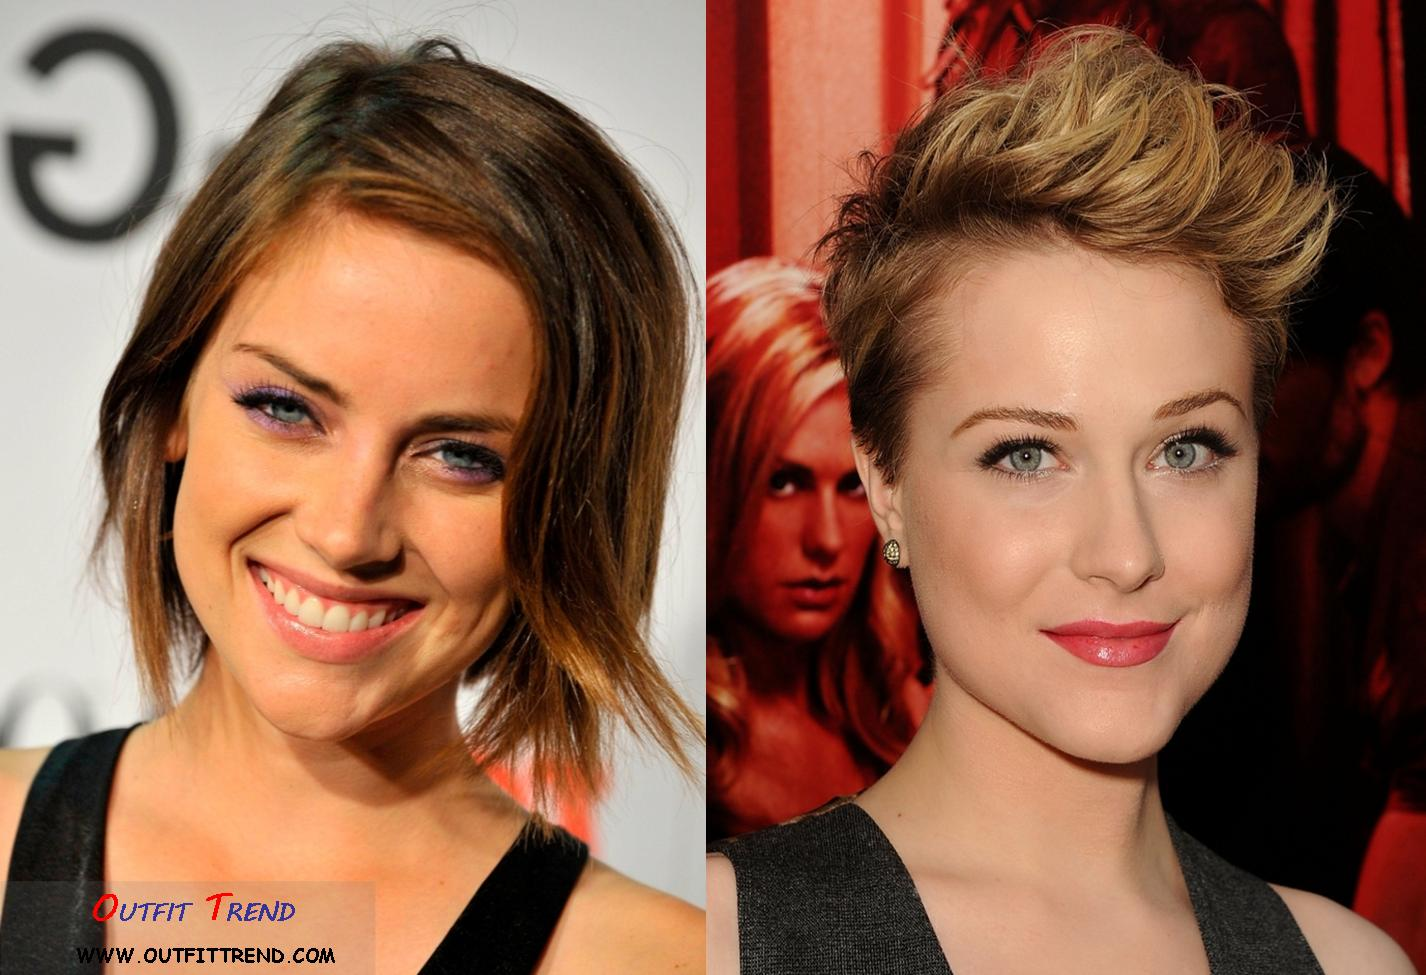 Trendy-Short-Hair-Styles 14 Top Celebrities Inspired Short Hairstyles To Follow This Year